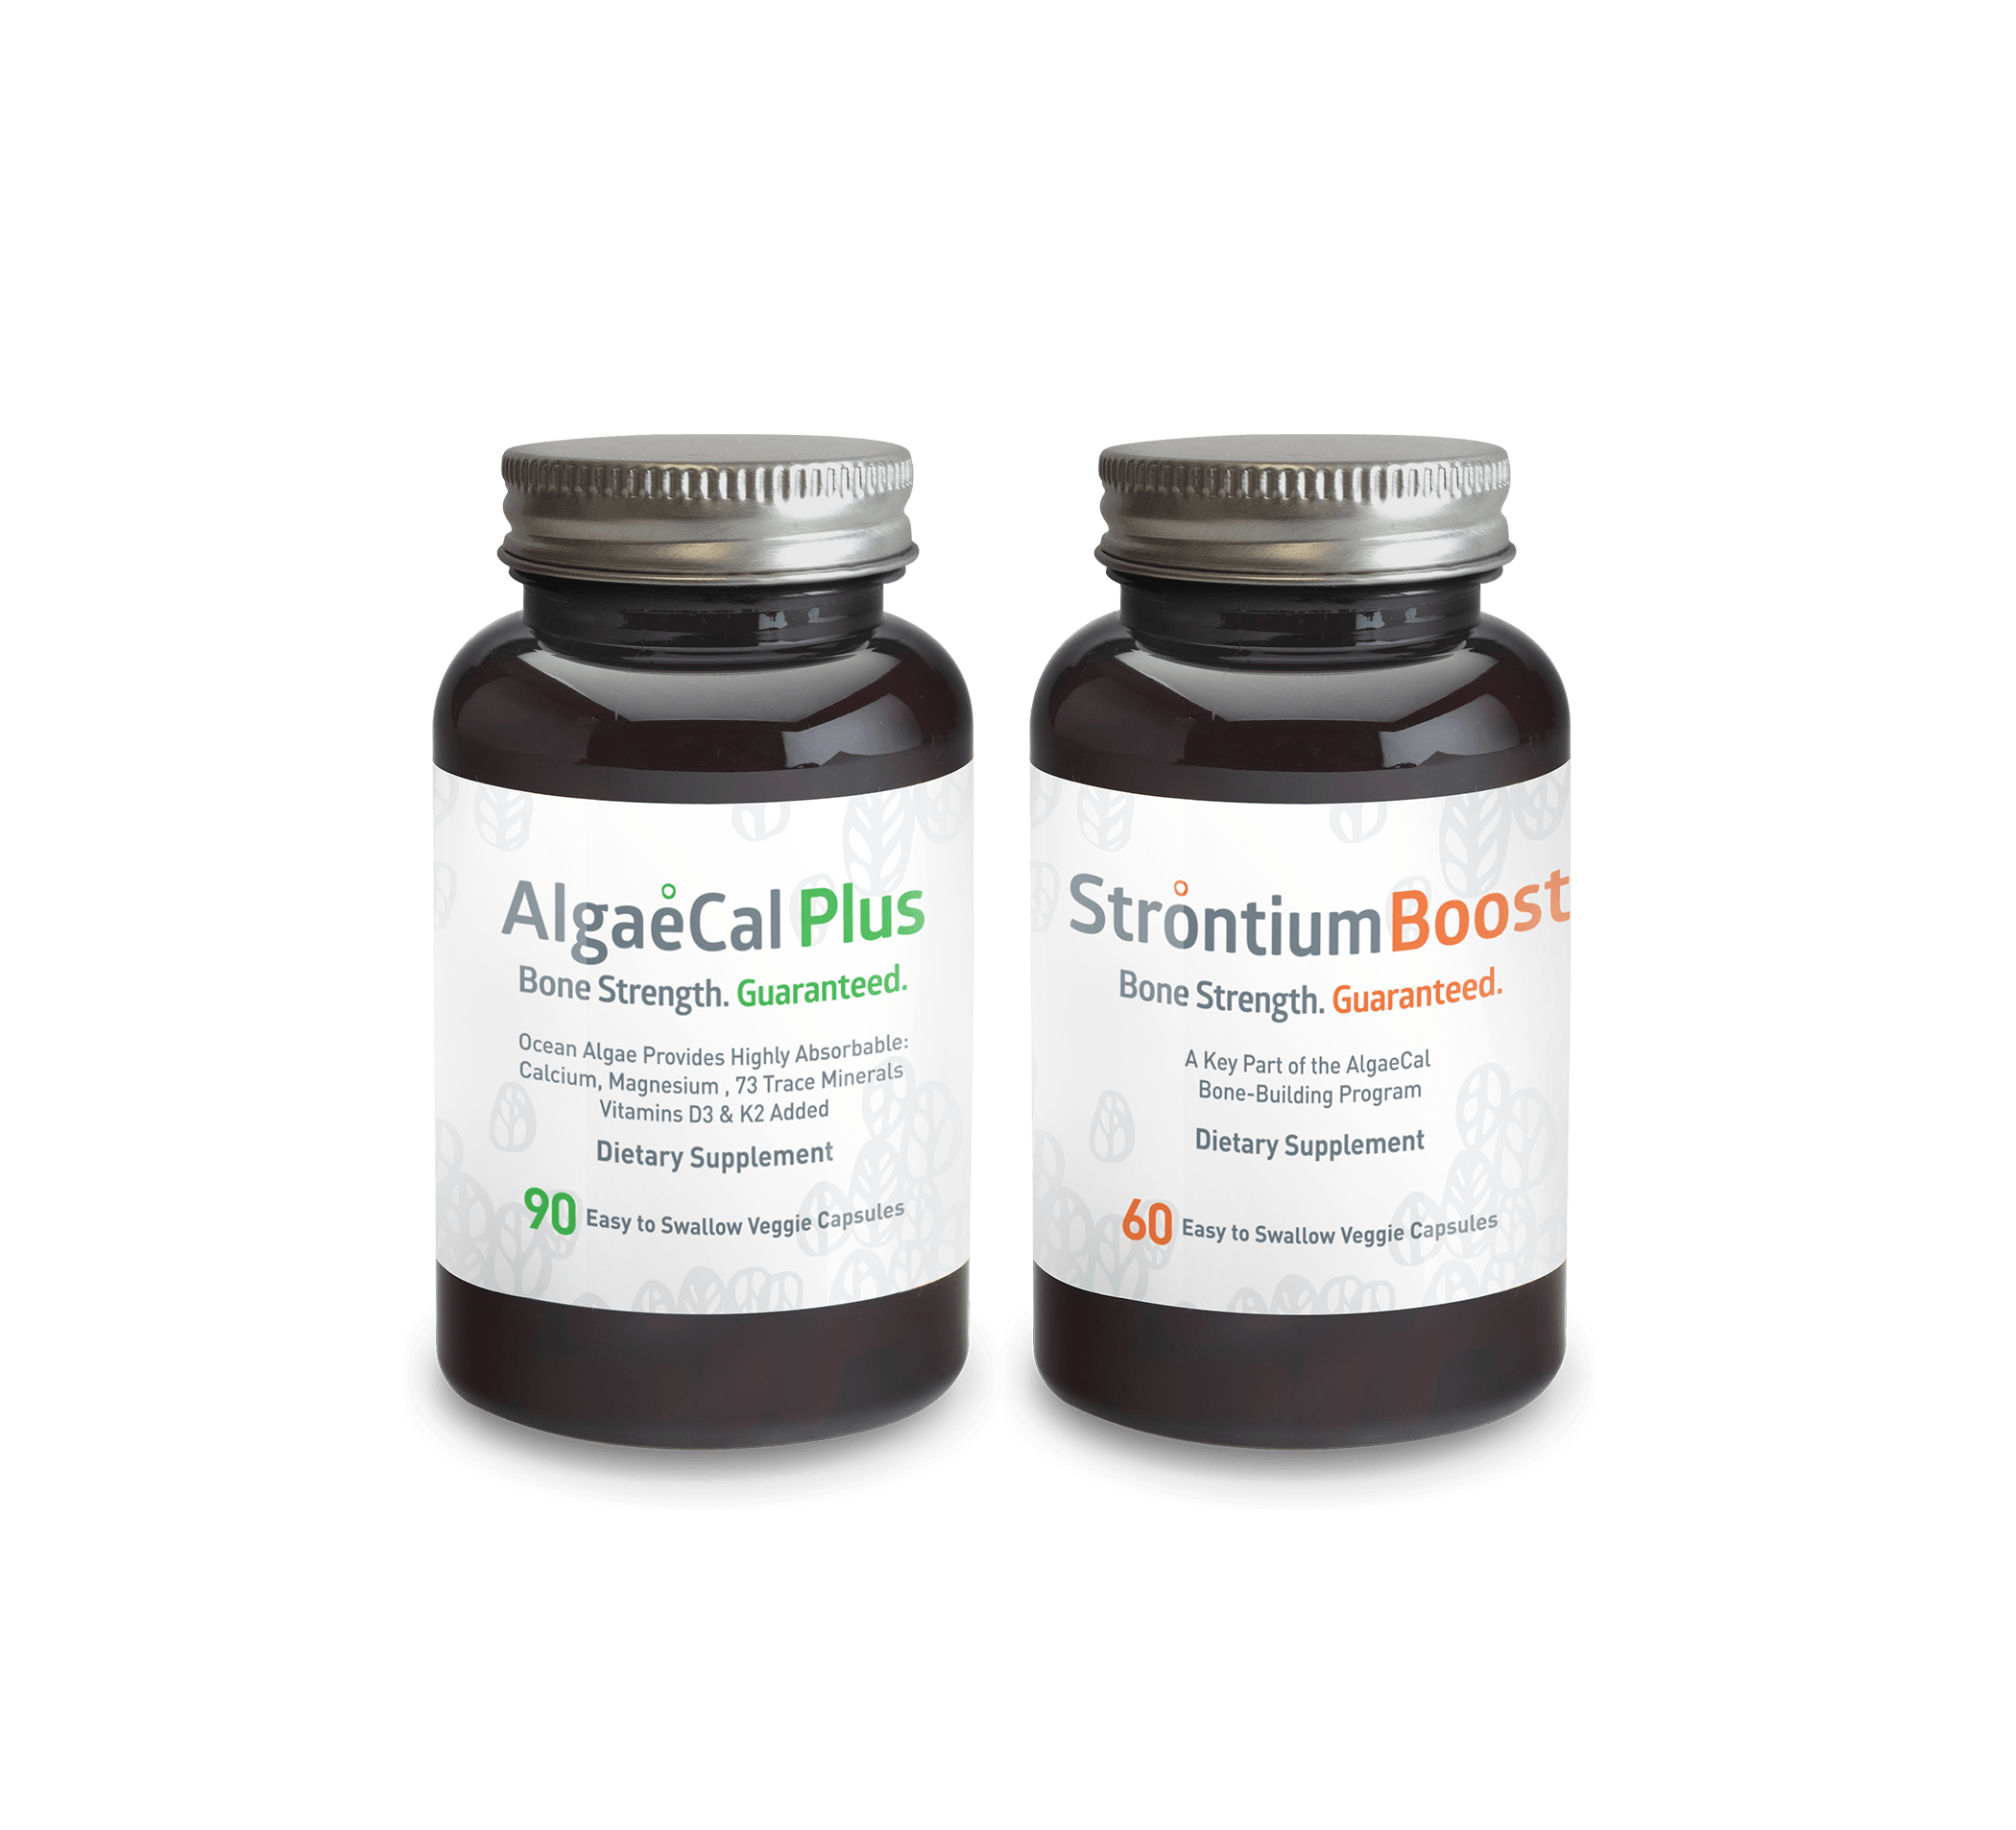 AlgaeCal Plus and Strontium Boost - Bone Builder Pack